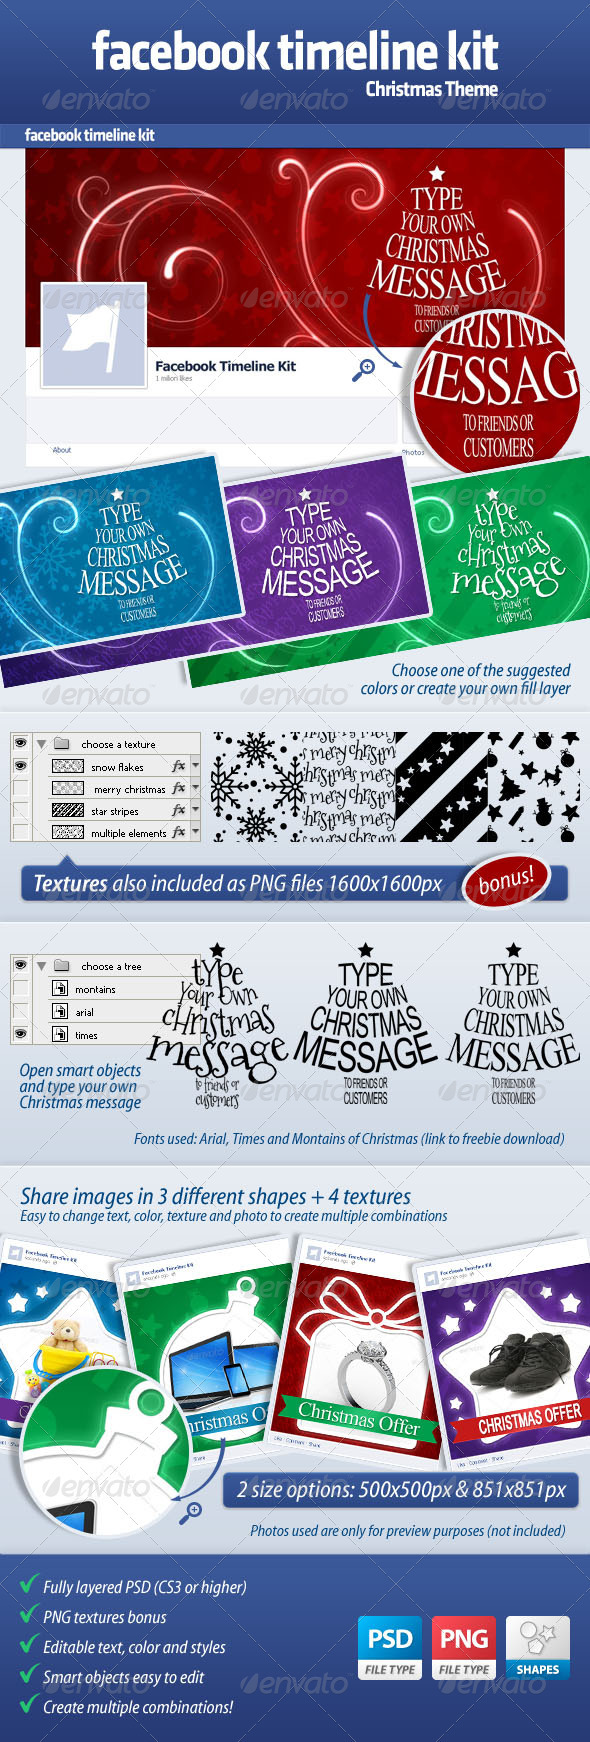 GraphicRiver FB Timeline Kit Christmas Theme 3456235